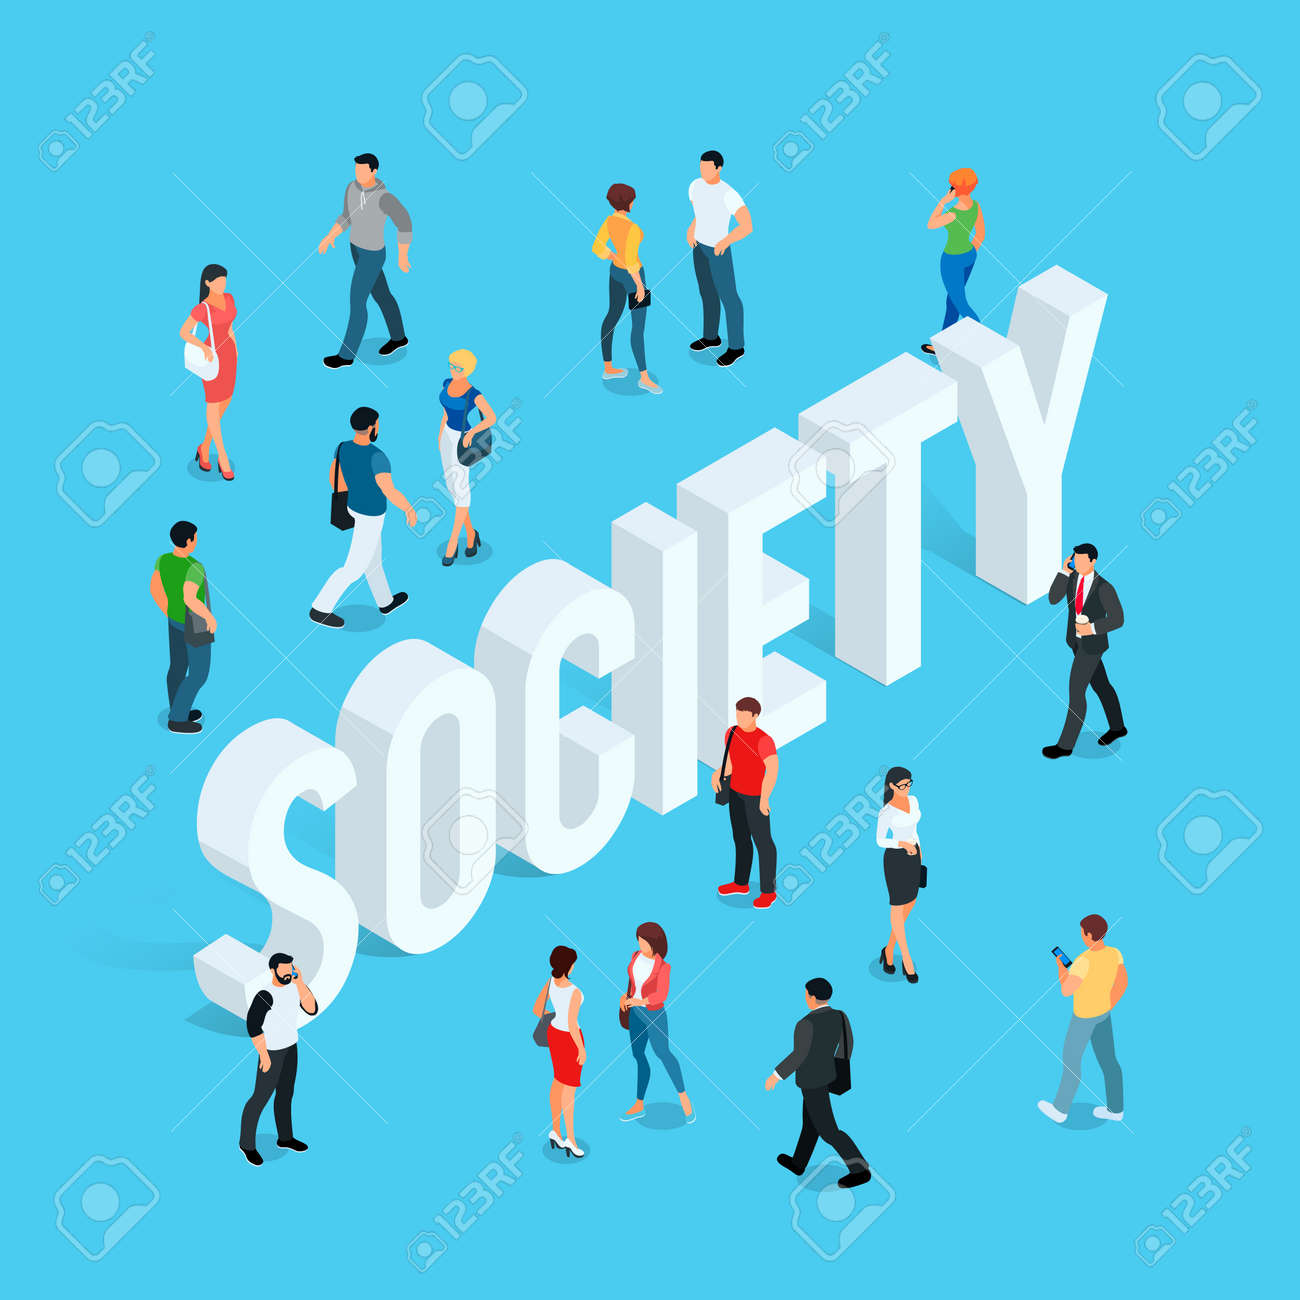 Society concept with people in different poses Stock Vector - 87732648